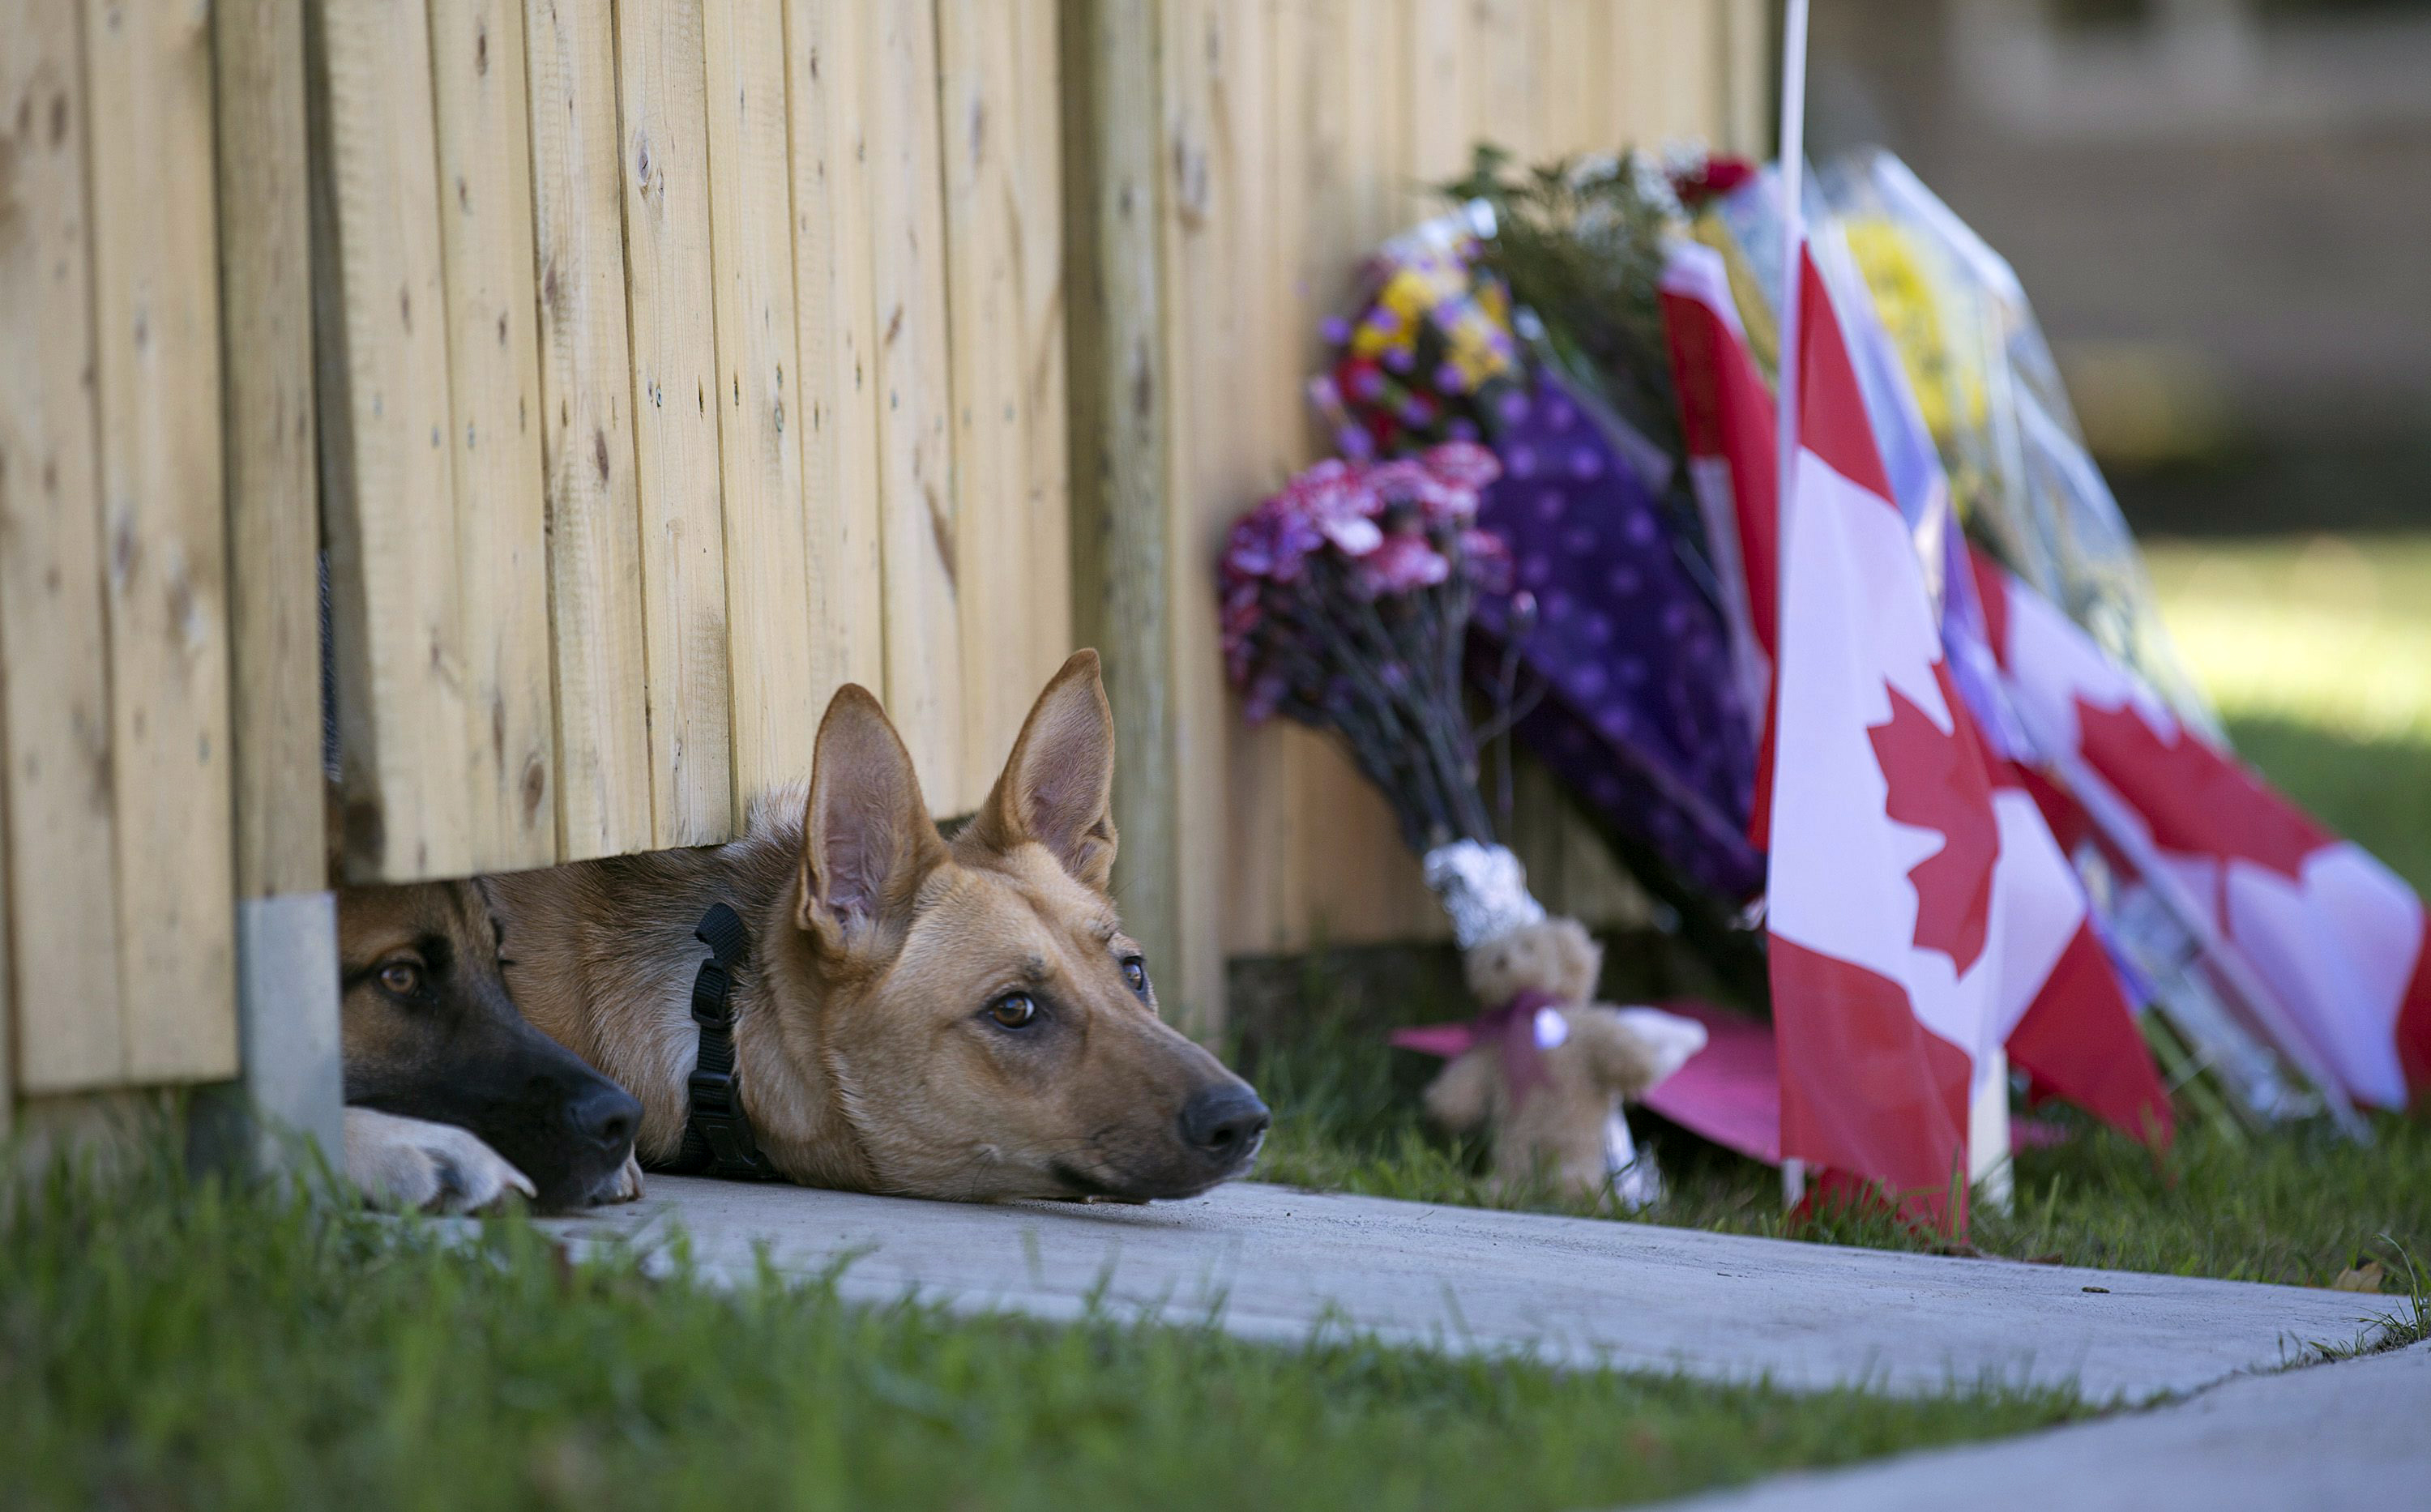 Oct. 23, 2014. Dogs peek out from under a gate at the Cirillo family home in Hamilton, Ontario near flowers and flags that have been left on Thursday,